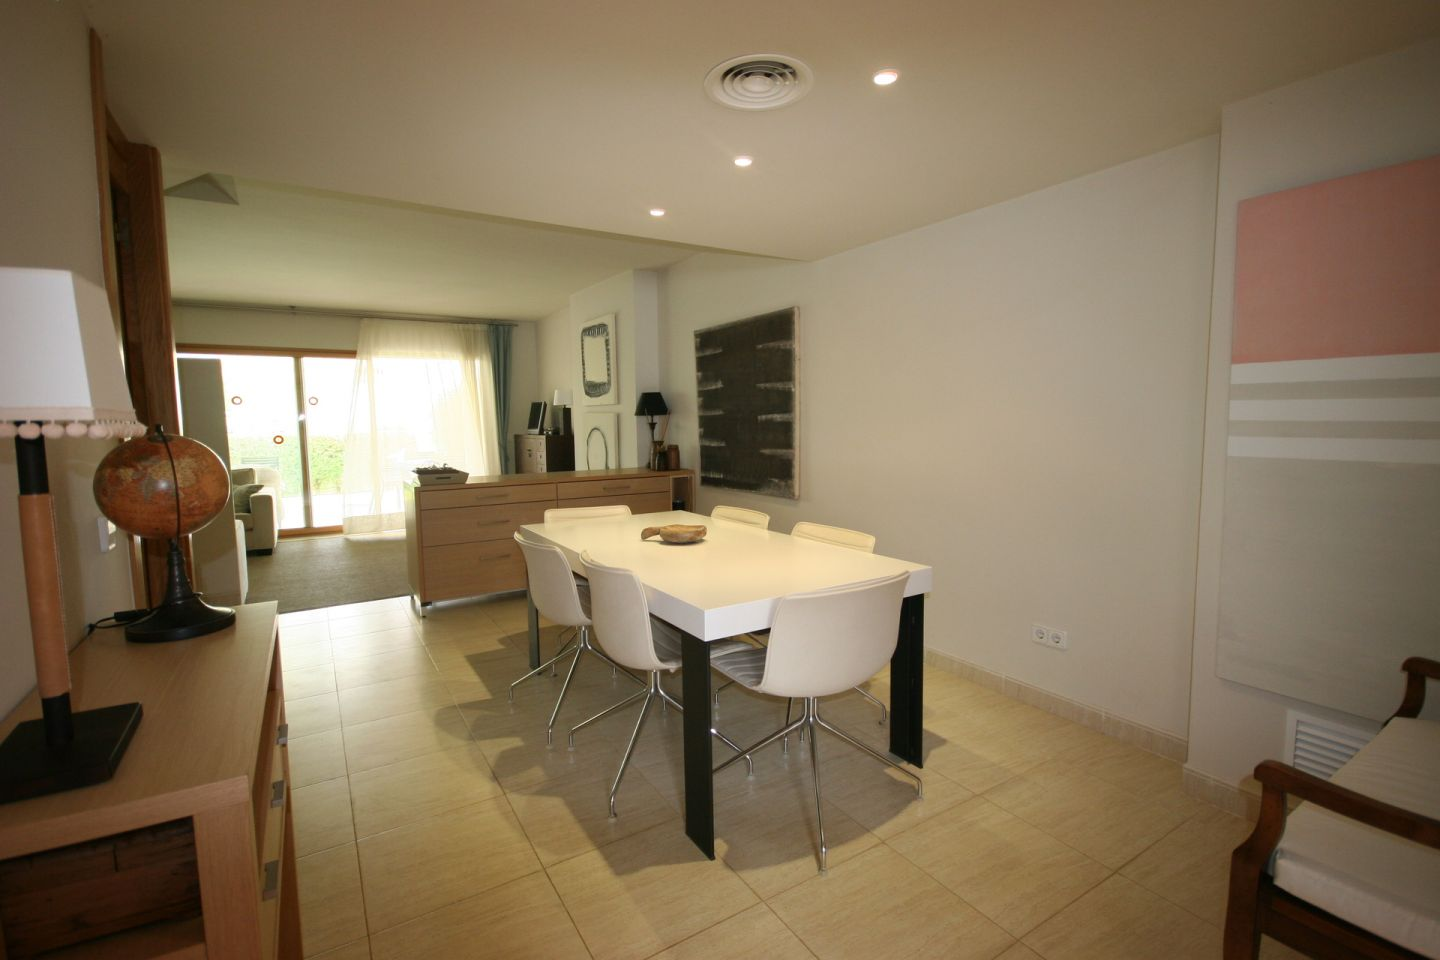 4 Bed Semidetached House for sale in PUERTO POLLENSA 6